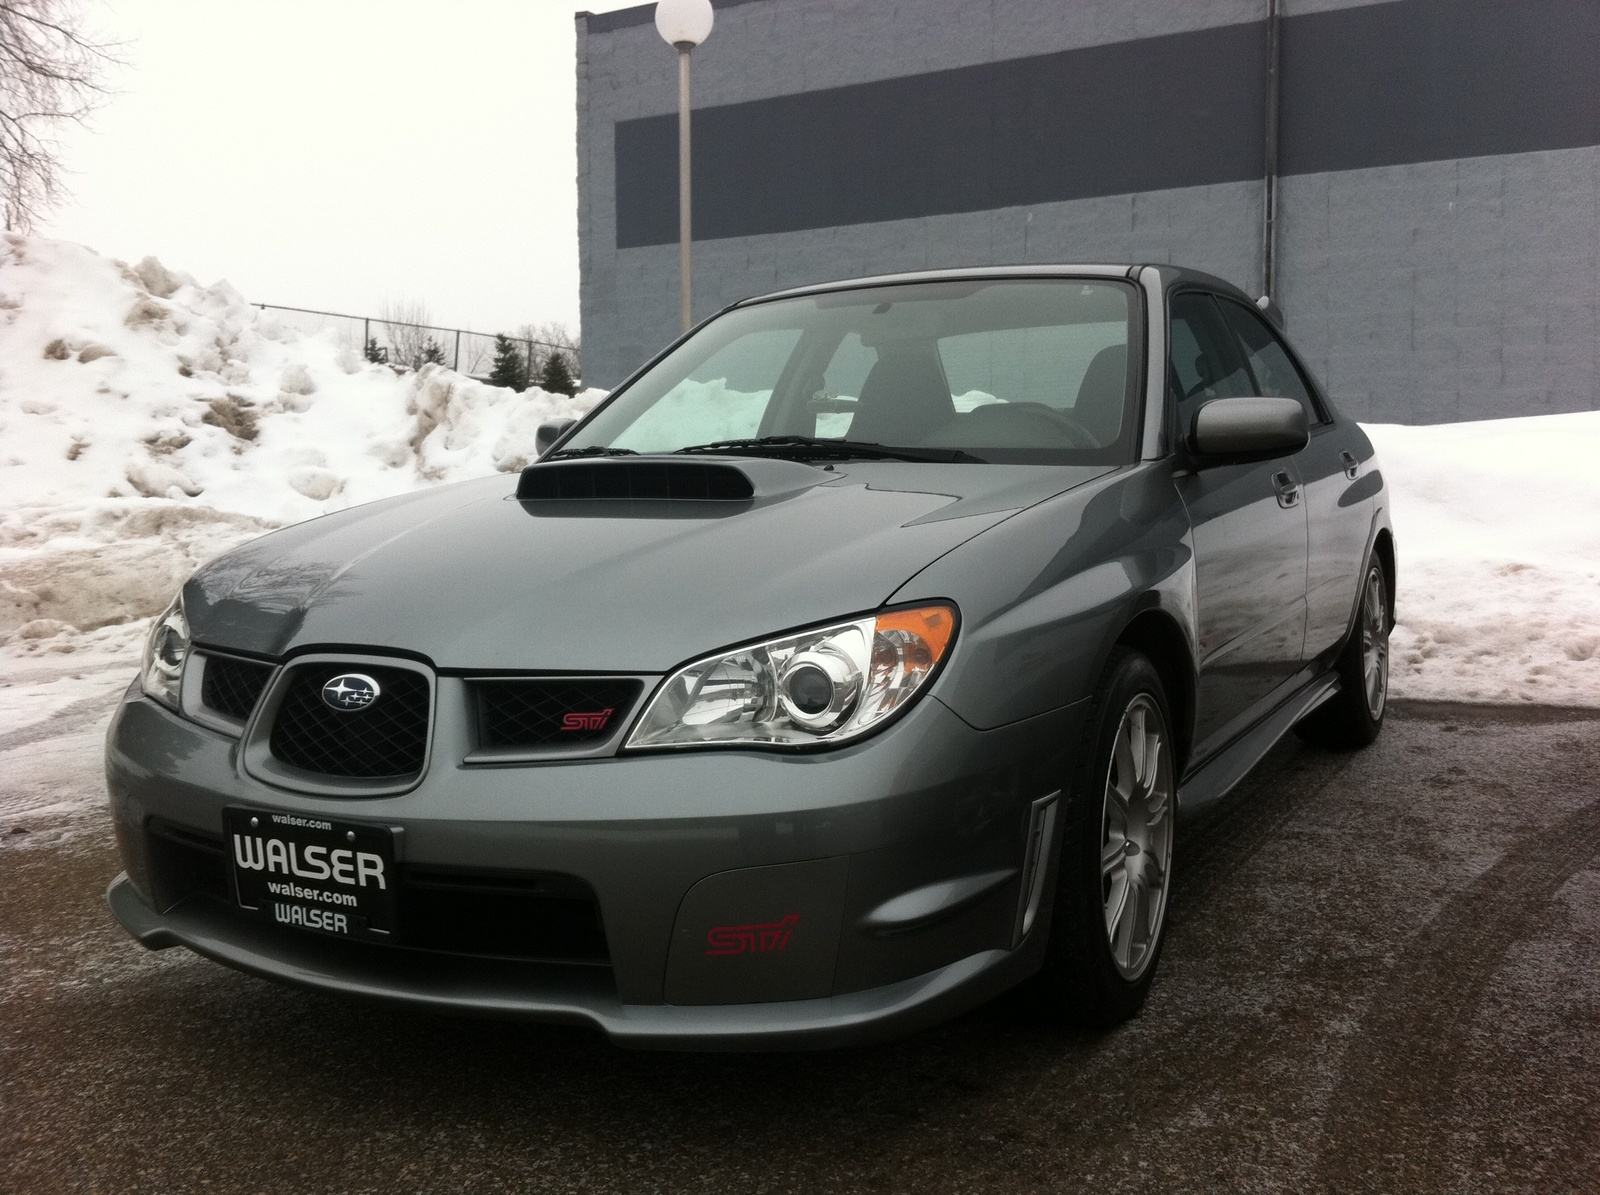 2007 subaru impreza wrx sti pictures cargurus. Black Bedroom Furniture Sets. Home Design Ideas